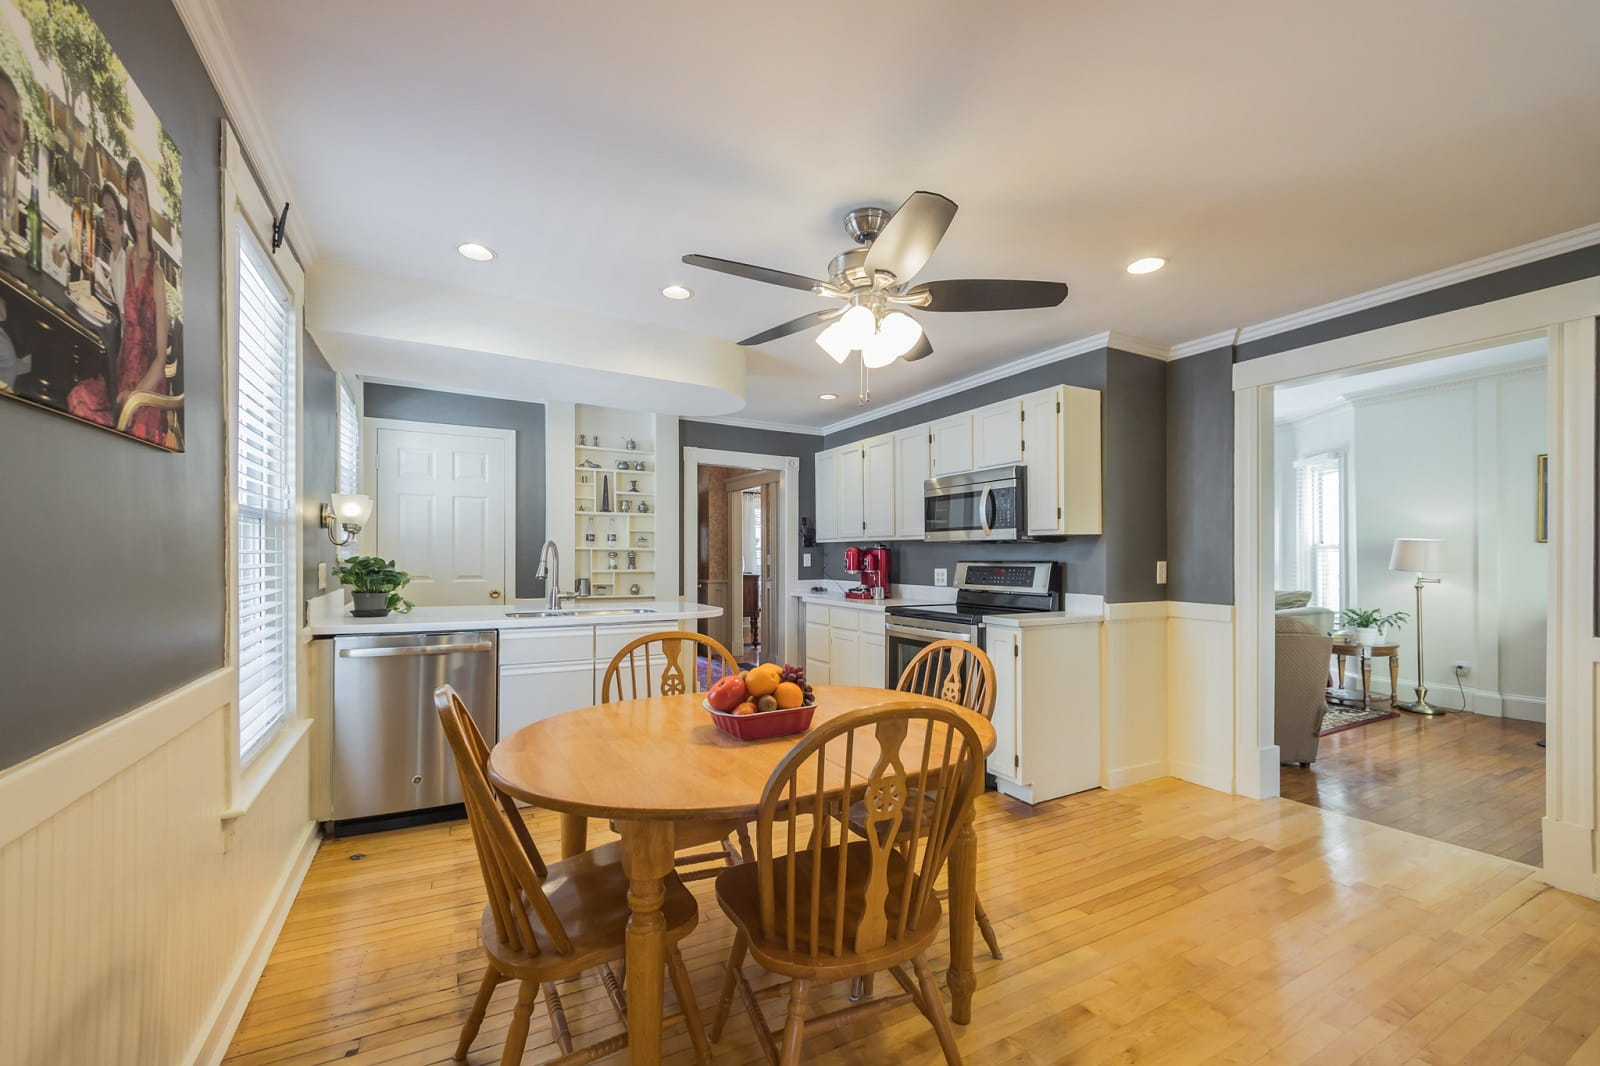 Real Estate Photography in Boston - MA - USA - Kitchen View